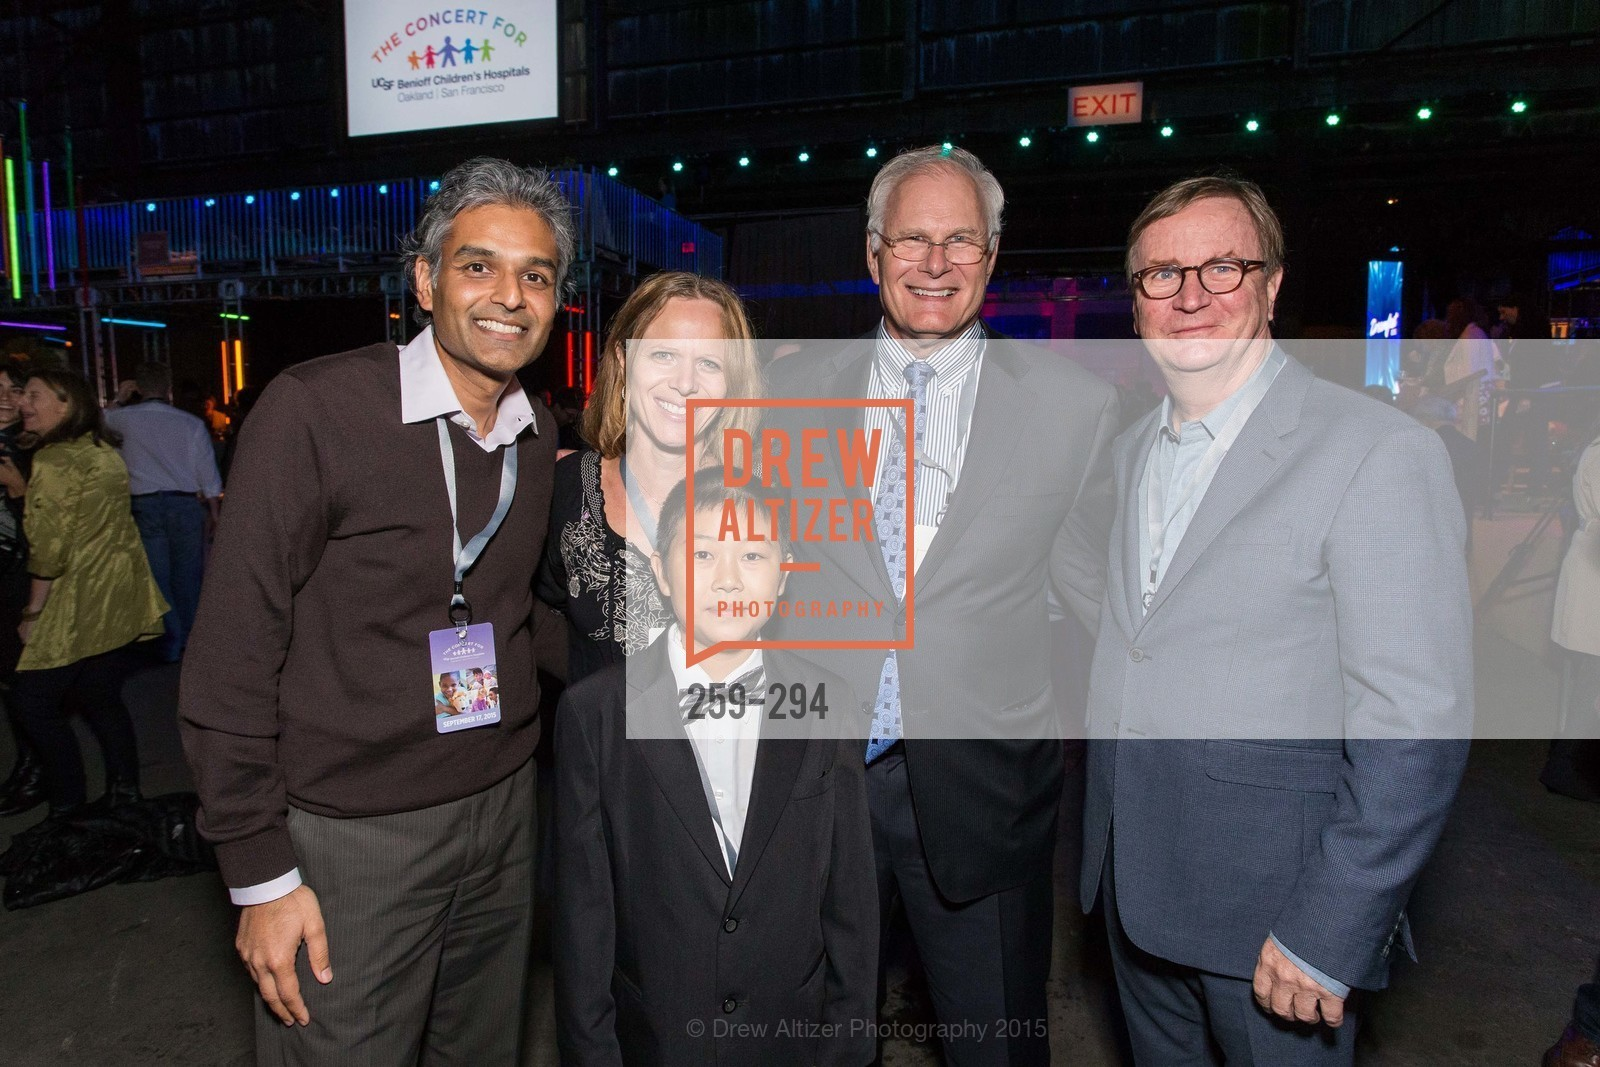 Anu Agrawal, Jennifer Michlitsch, Zhenkang Zhao, Mark Laret, Sam Hawgood, The Concert For UCSF Benioff Children's Hospital, Pier 70, September 17th, 2015,Drew Altizer, Drew Altizer Photography, full-service agency, private events, San Francisco photographer, photographer california